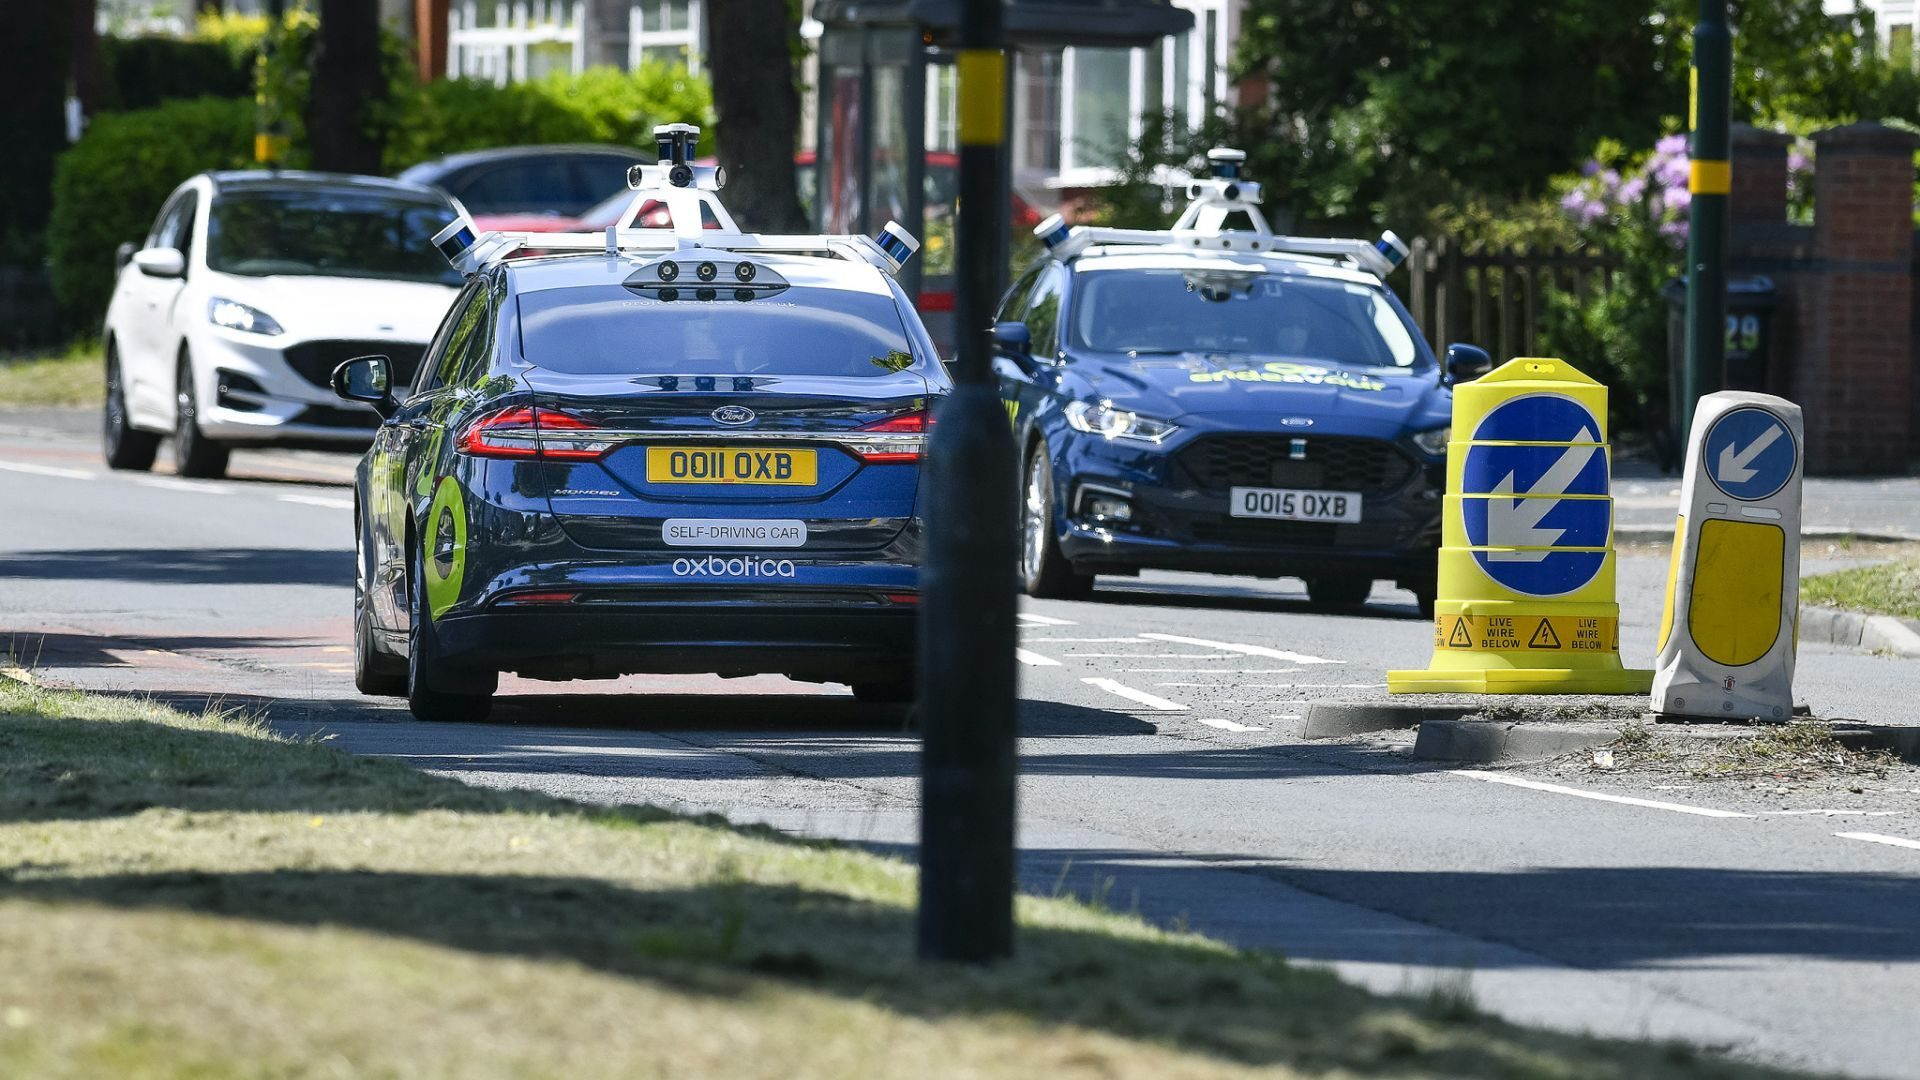 Self driving cars are coming to Birmingham